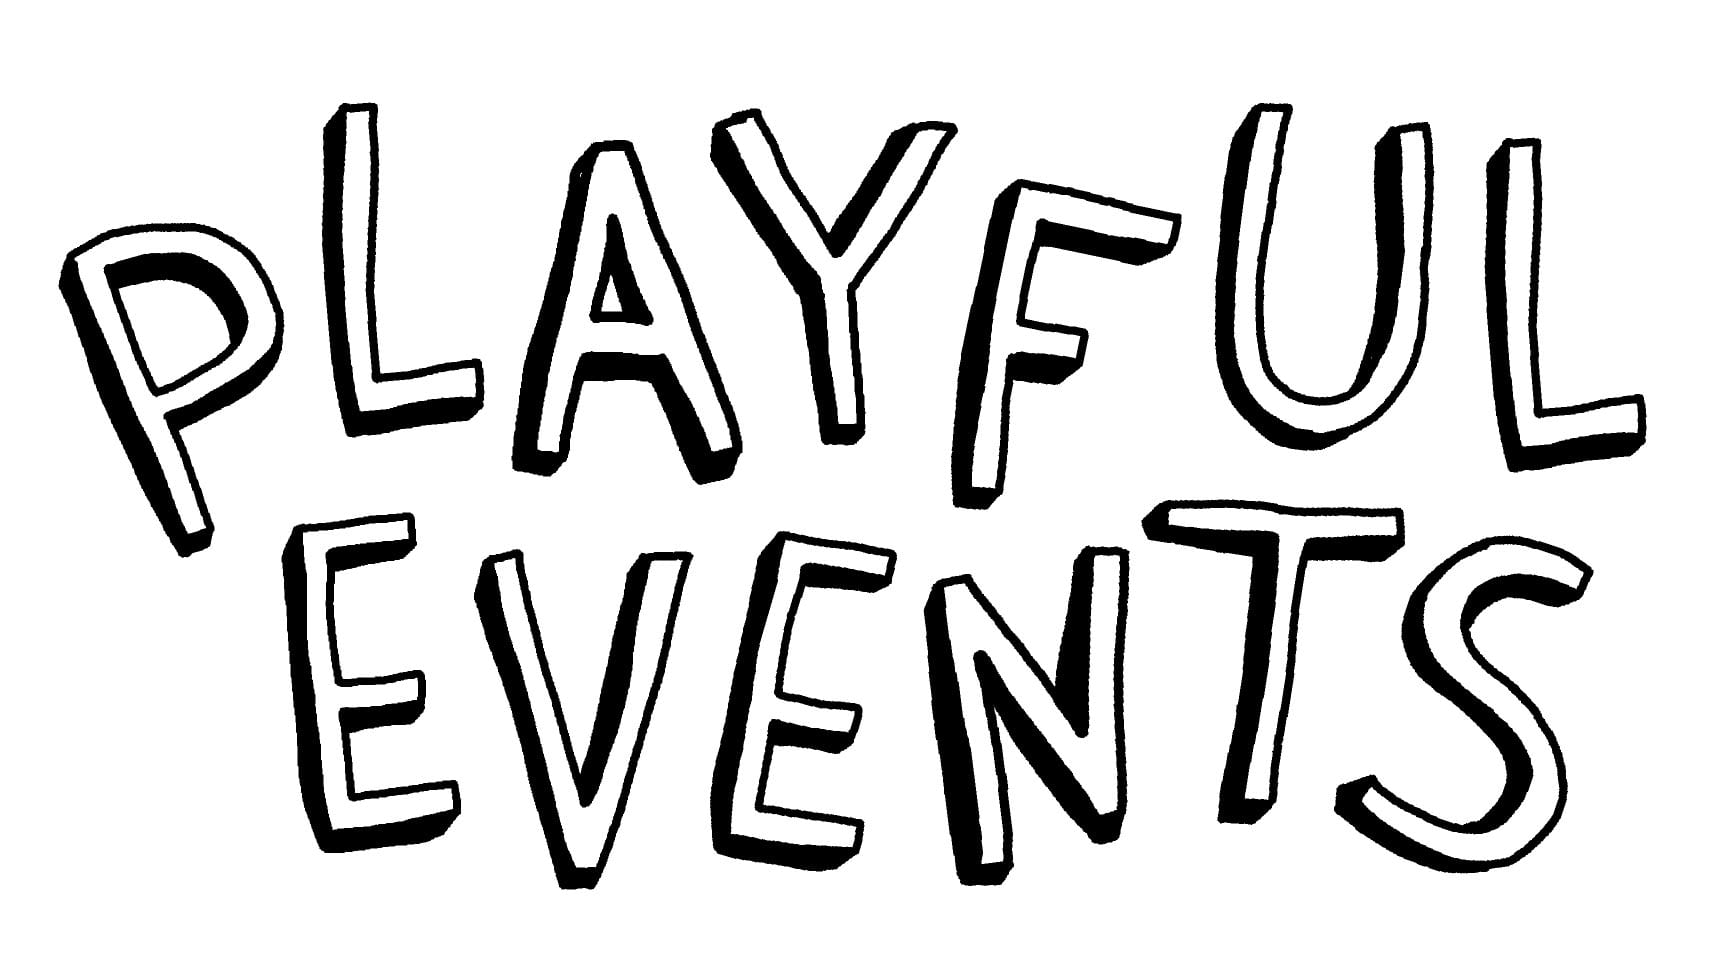 PlayFulEvents